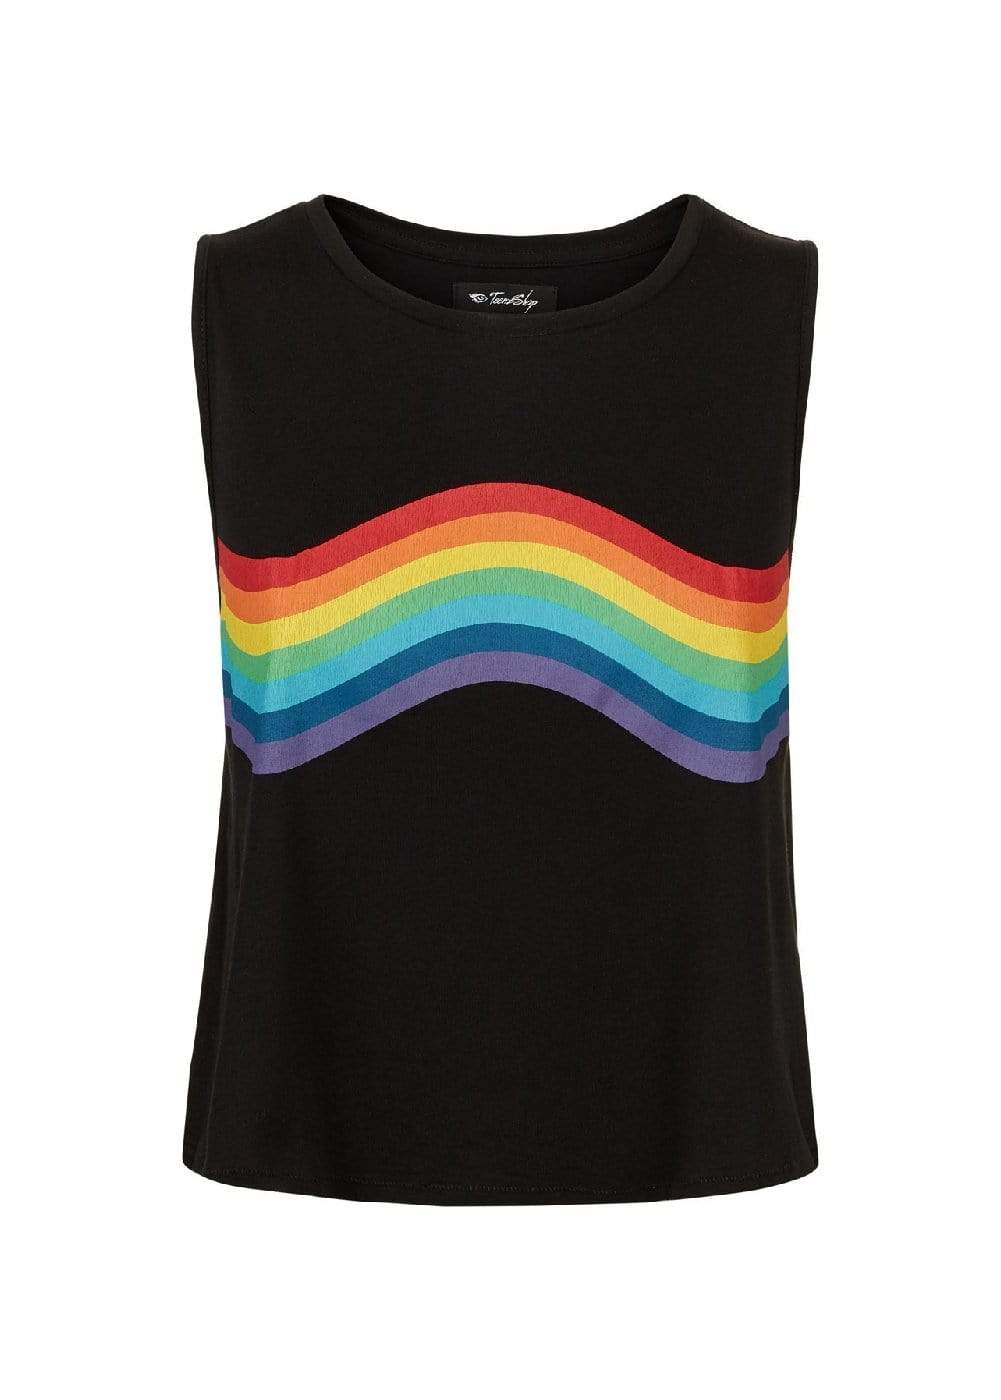 Teenzshop  Girls Black Rainbow Tank Top